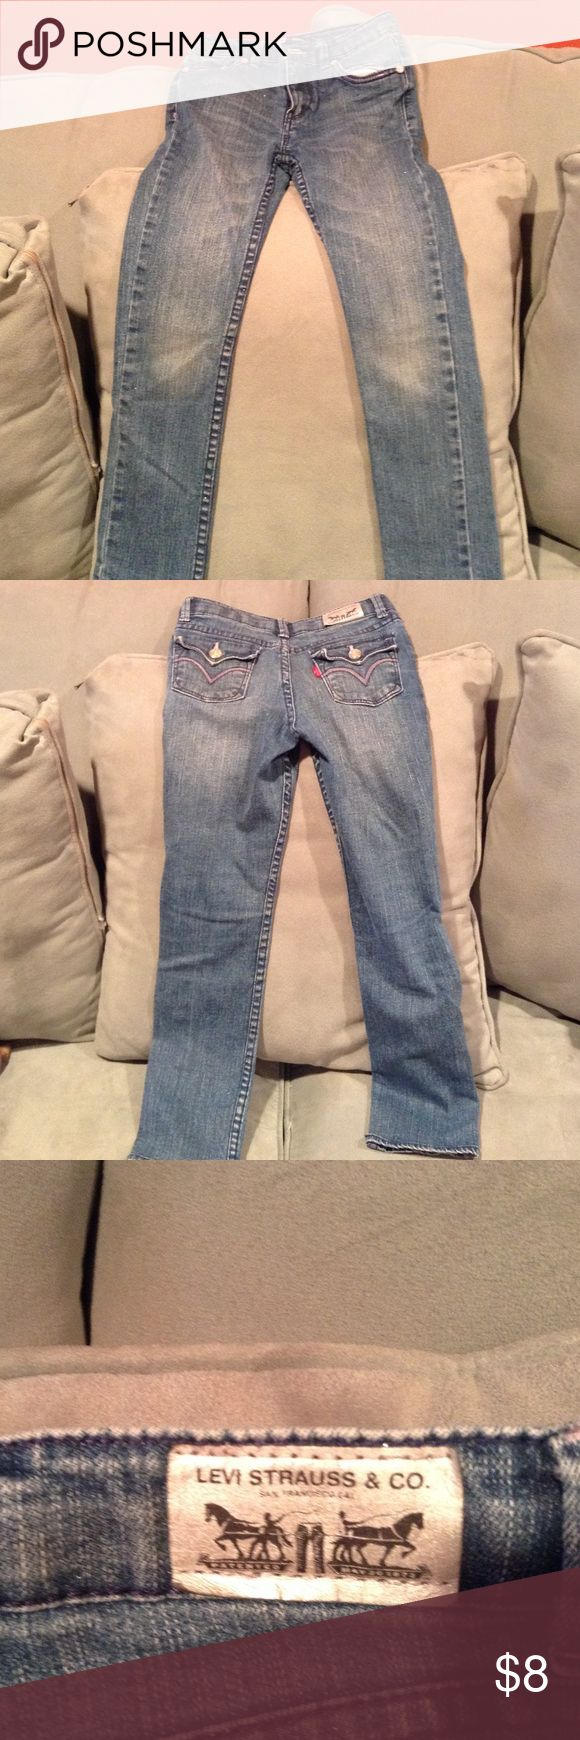 GUC Levis skinny jeans Girls size 6X skinny jeans. Levi's Bottoms Jeans